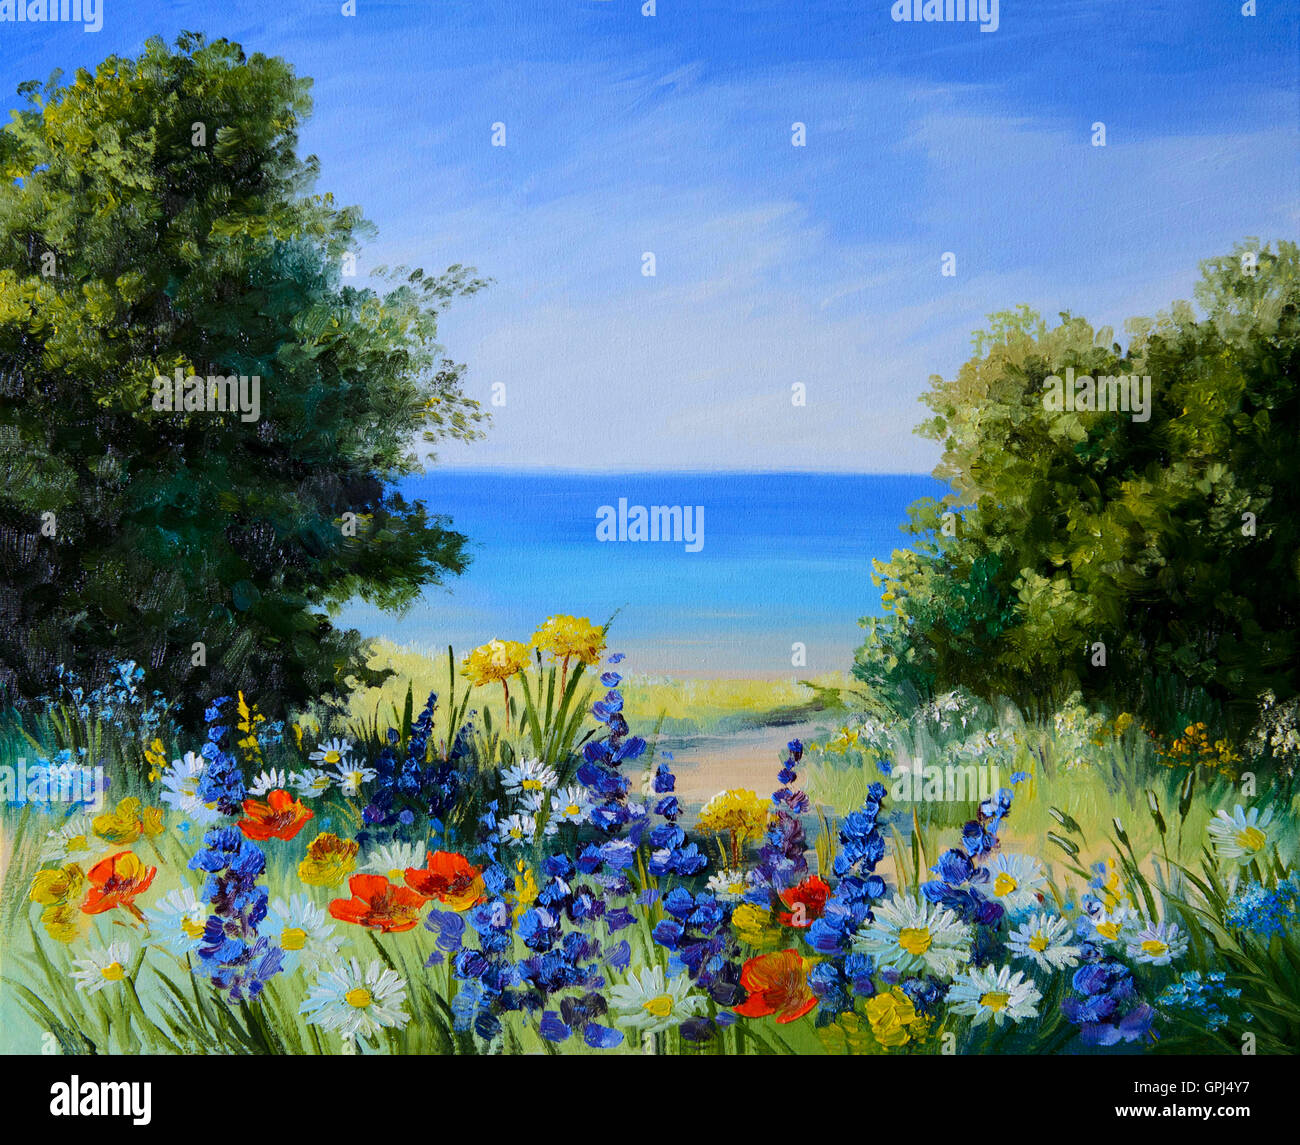 oil painting landscape - field near the sea, wild flowers, artwork, background - Stock Image